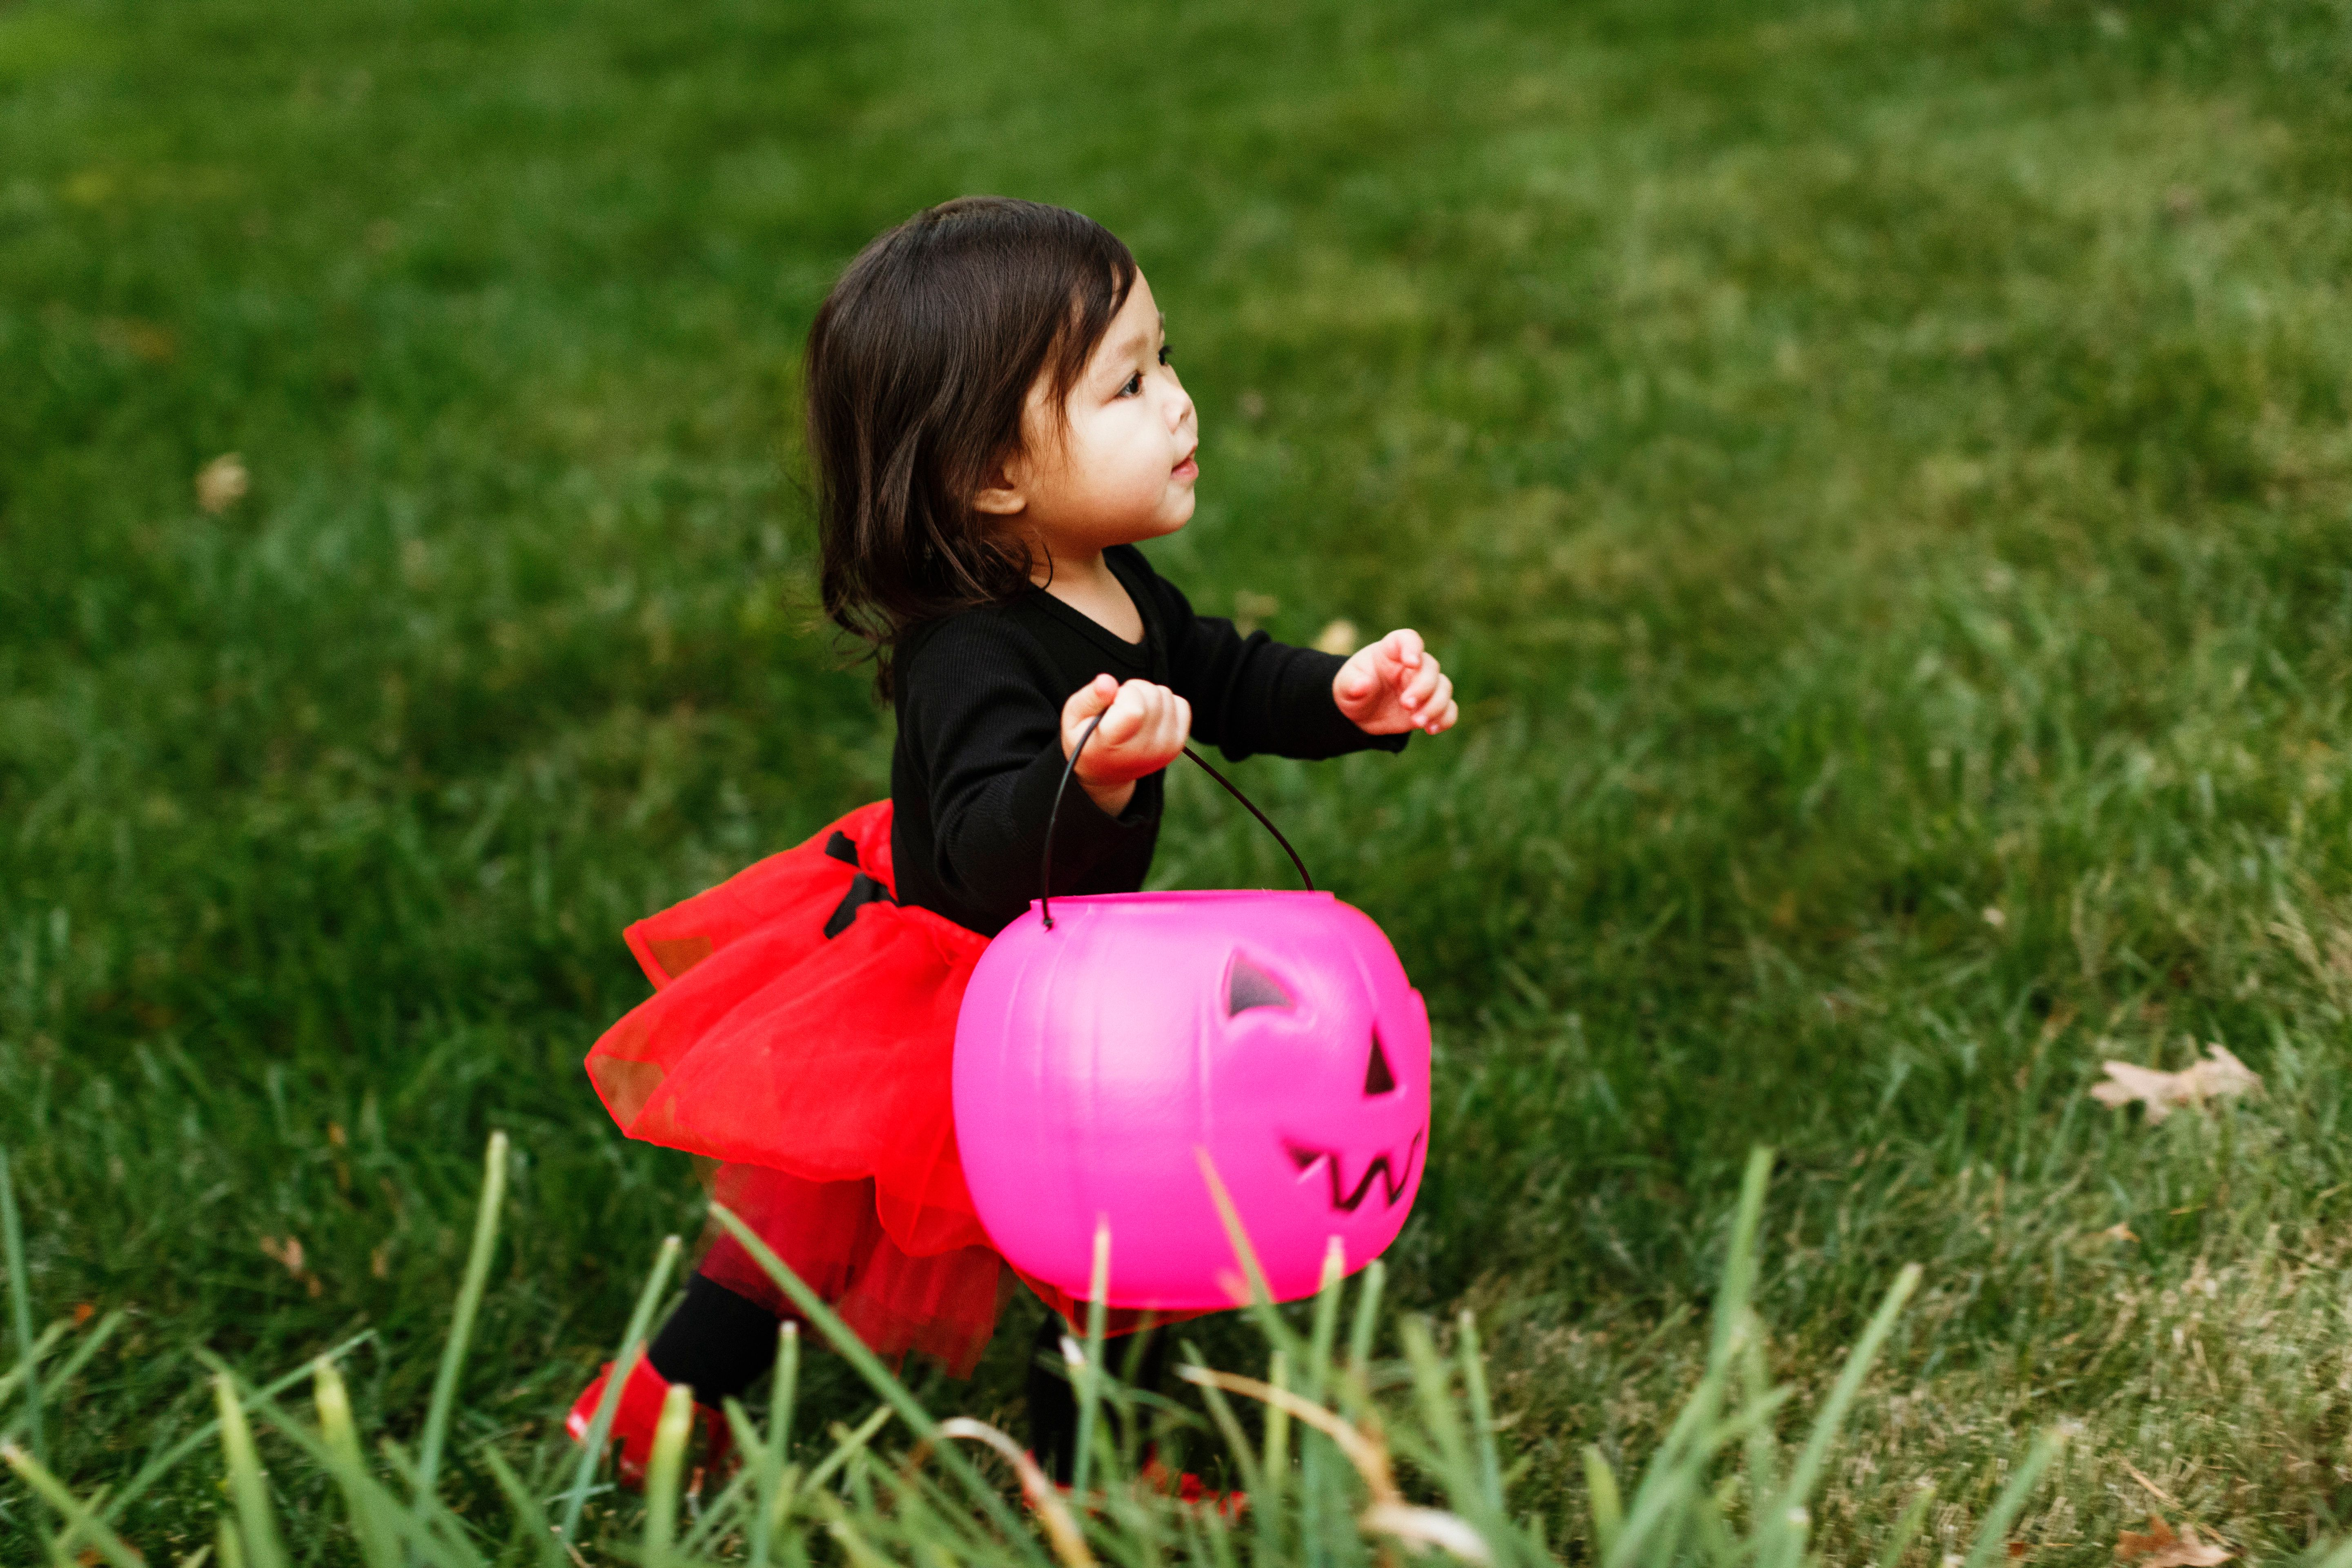 There are a handful of nonprofits with a focus on donating costumes to kids. Social media and secondhand clothing sites are also helpful.